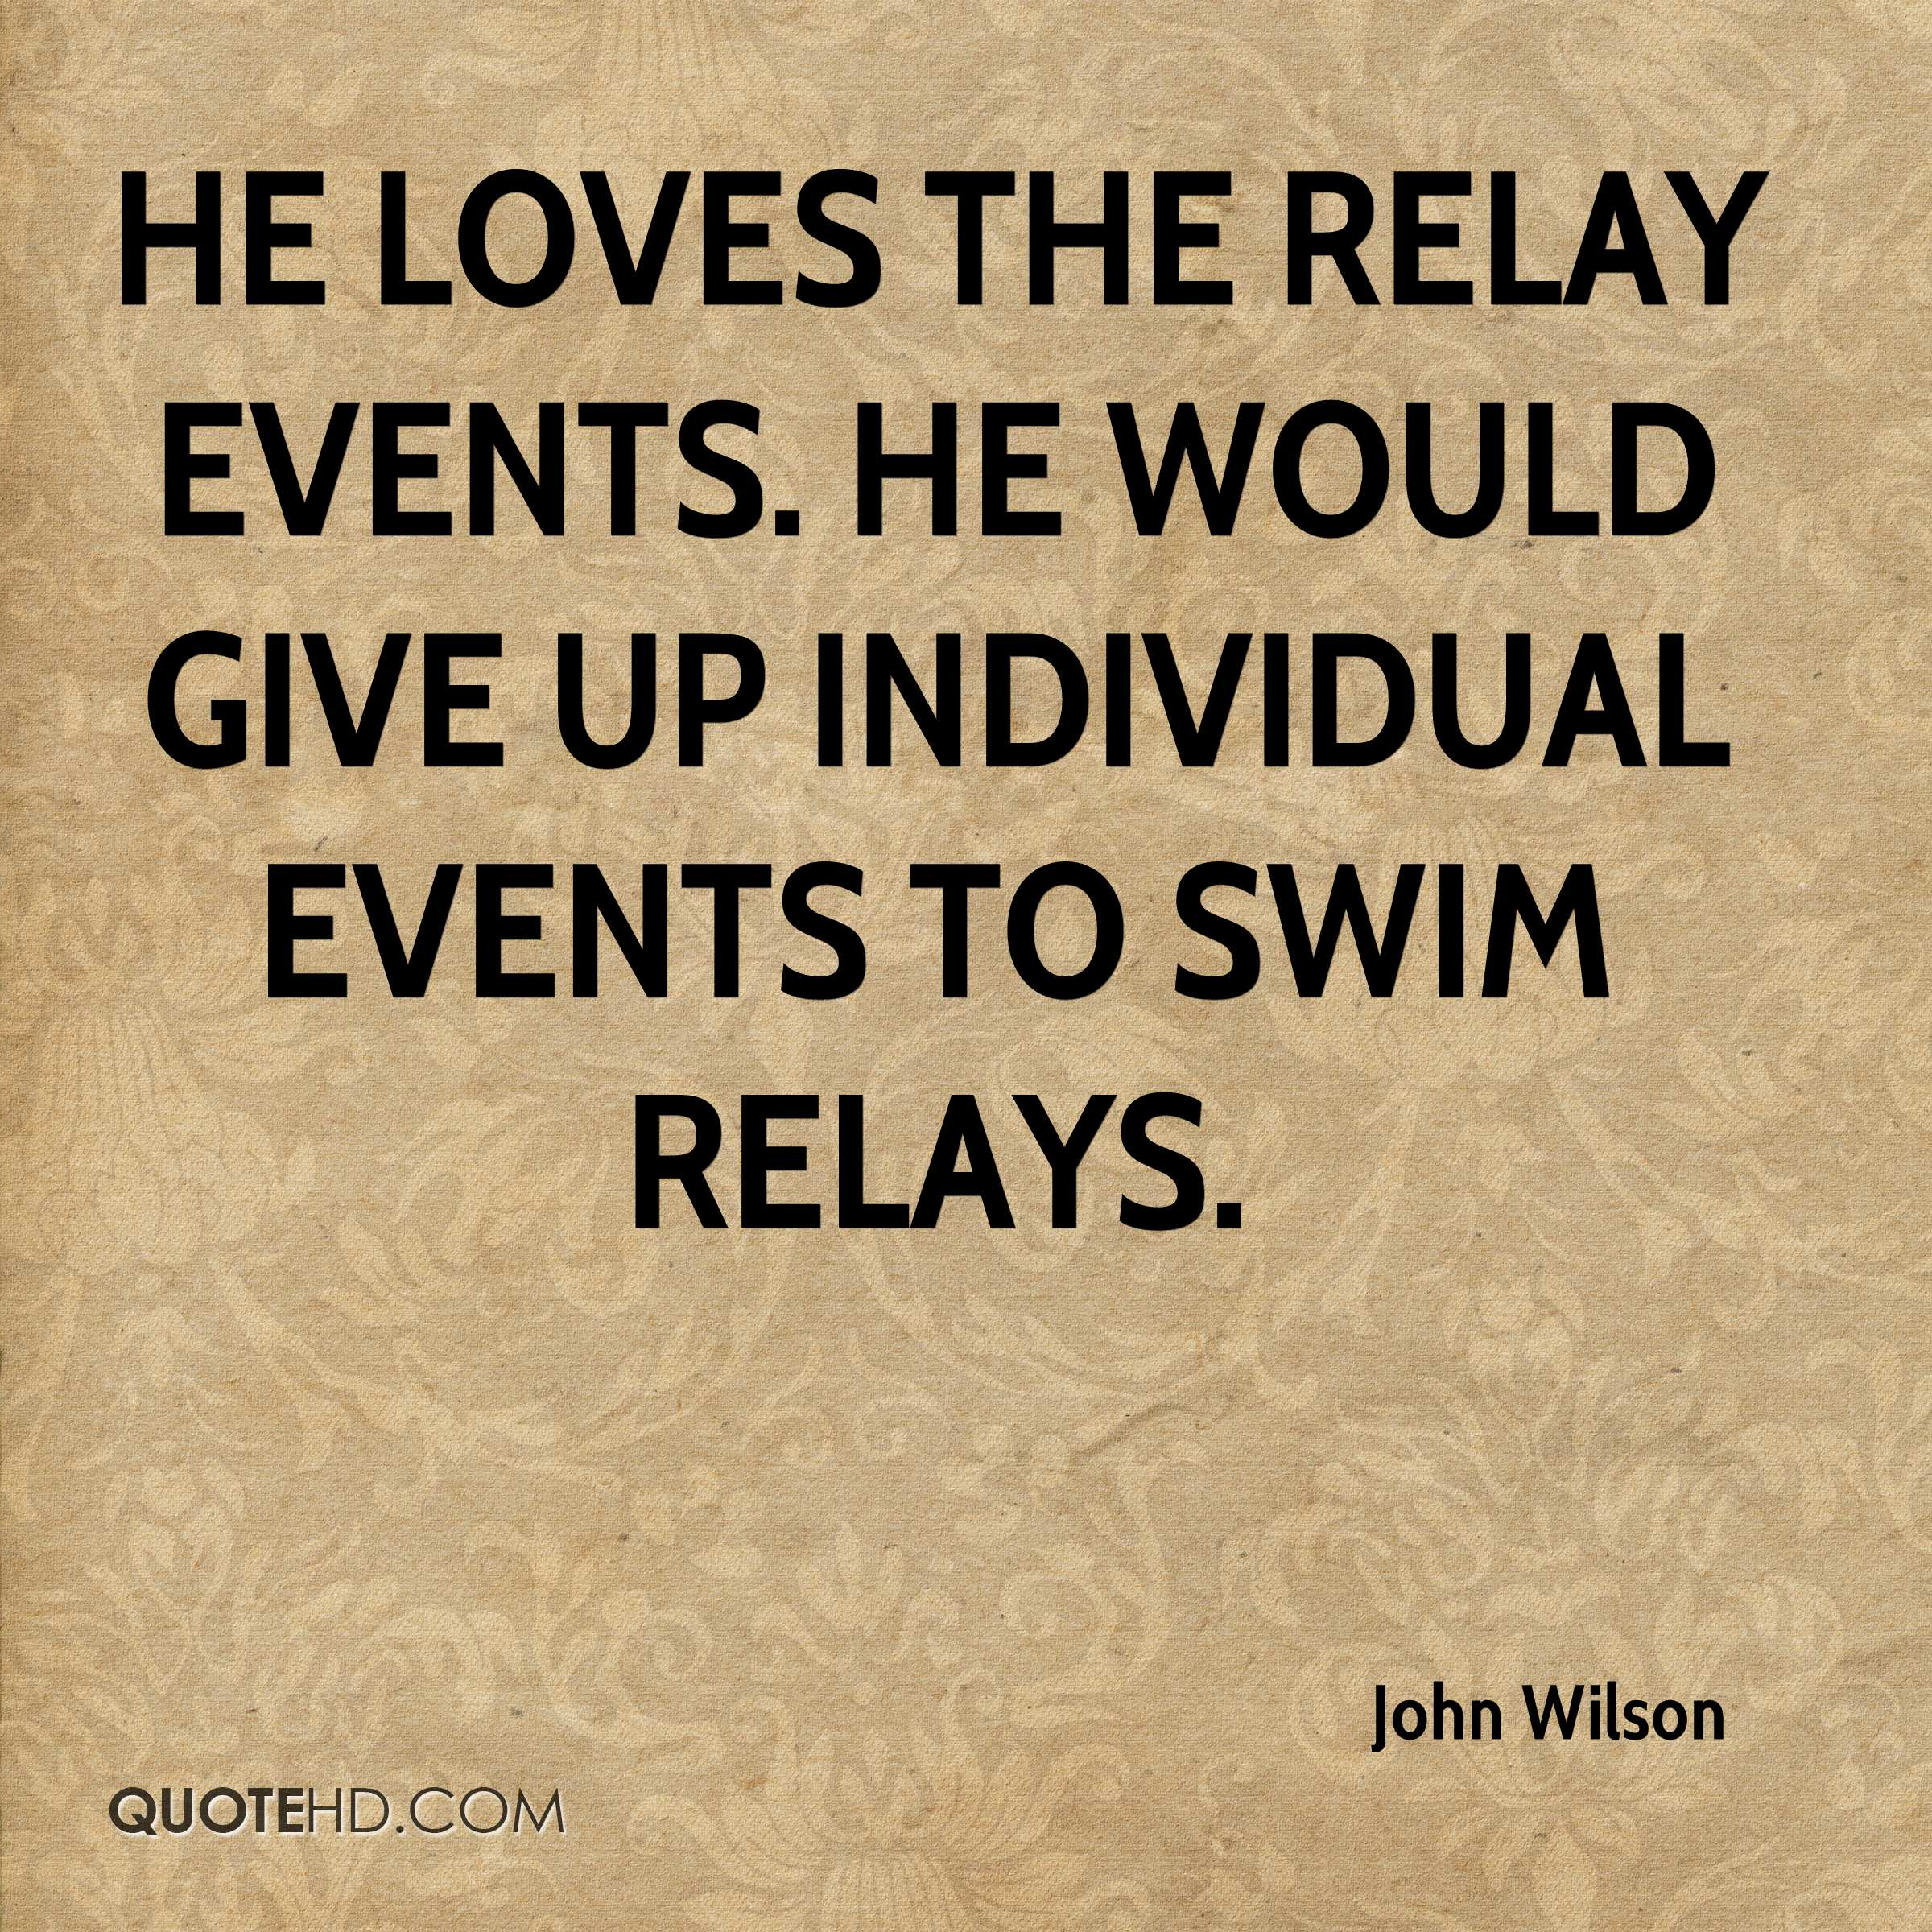 He loves the relay events. He would give up individual events to swim relays.